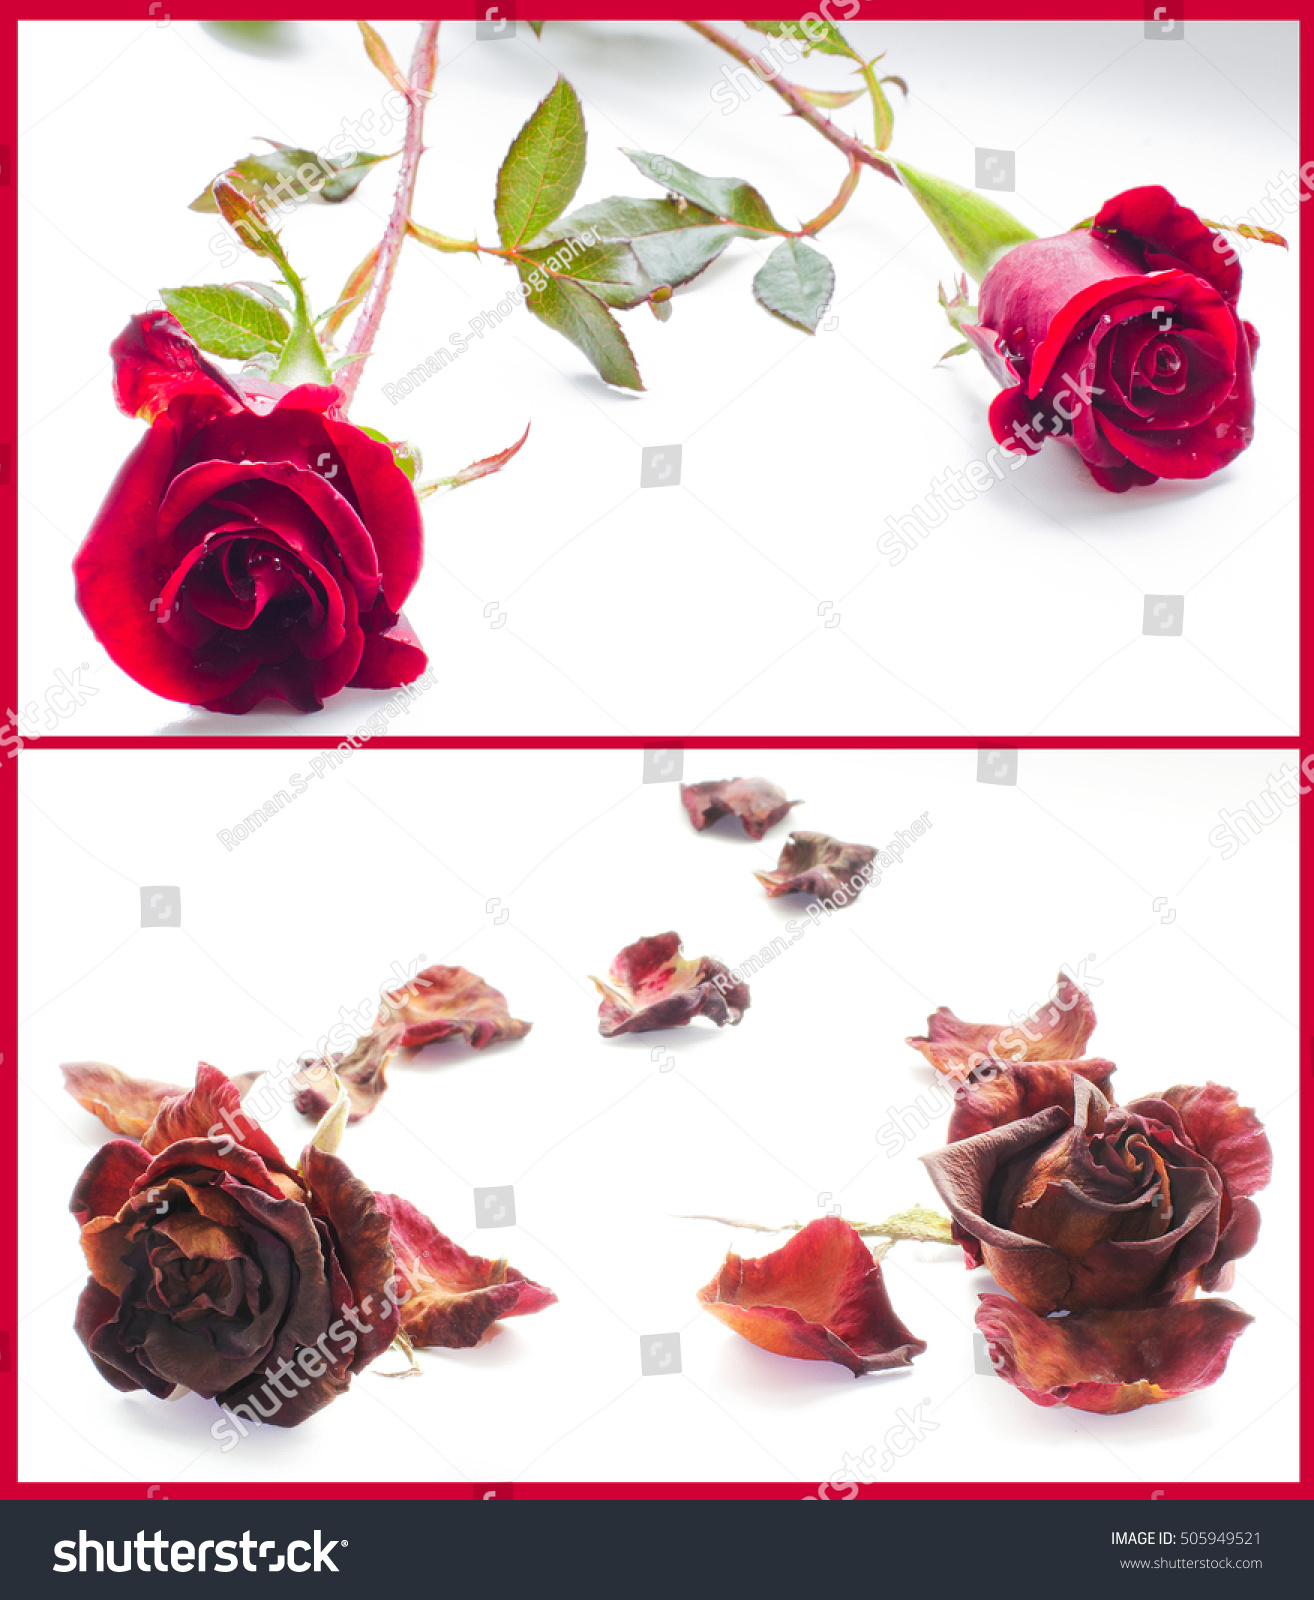 Collage two photos life death red stock photo royalty free a collage of two photos life and death red roses on white mightylinksfo